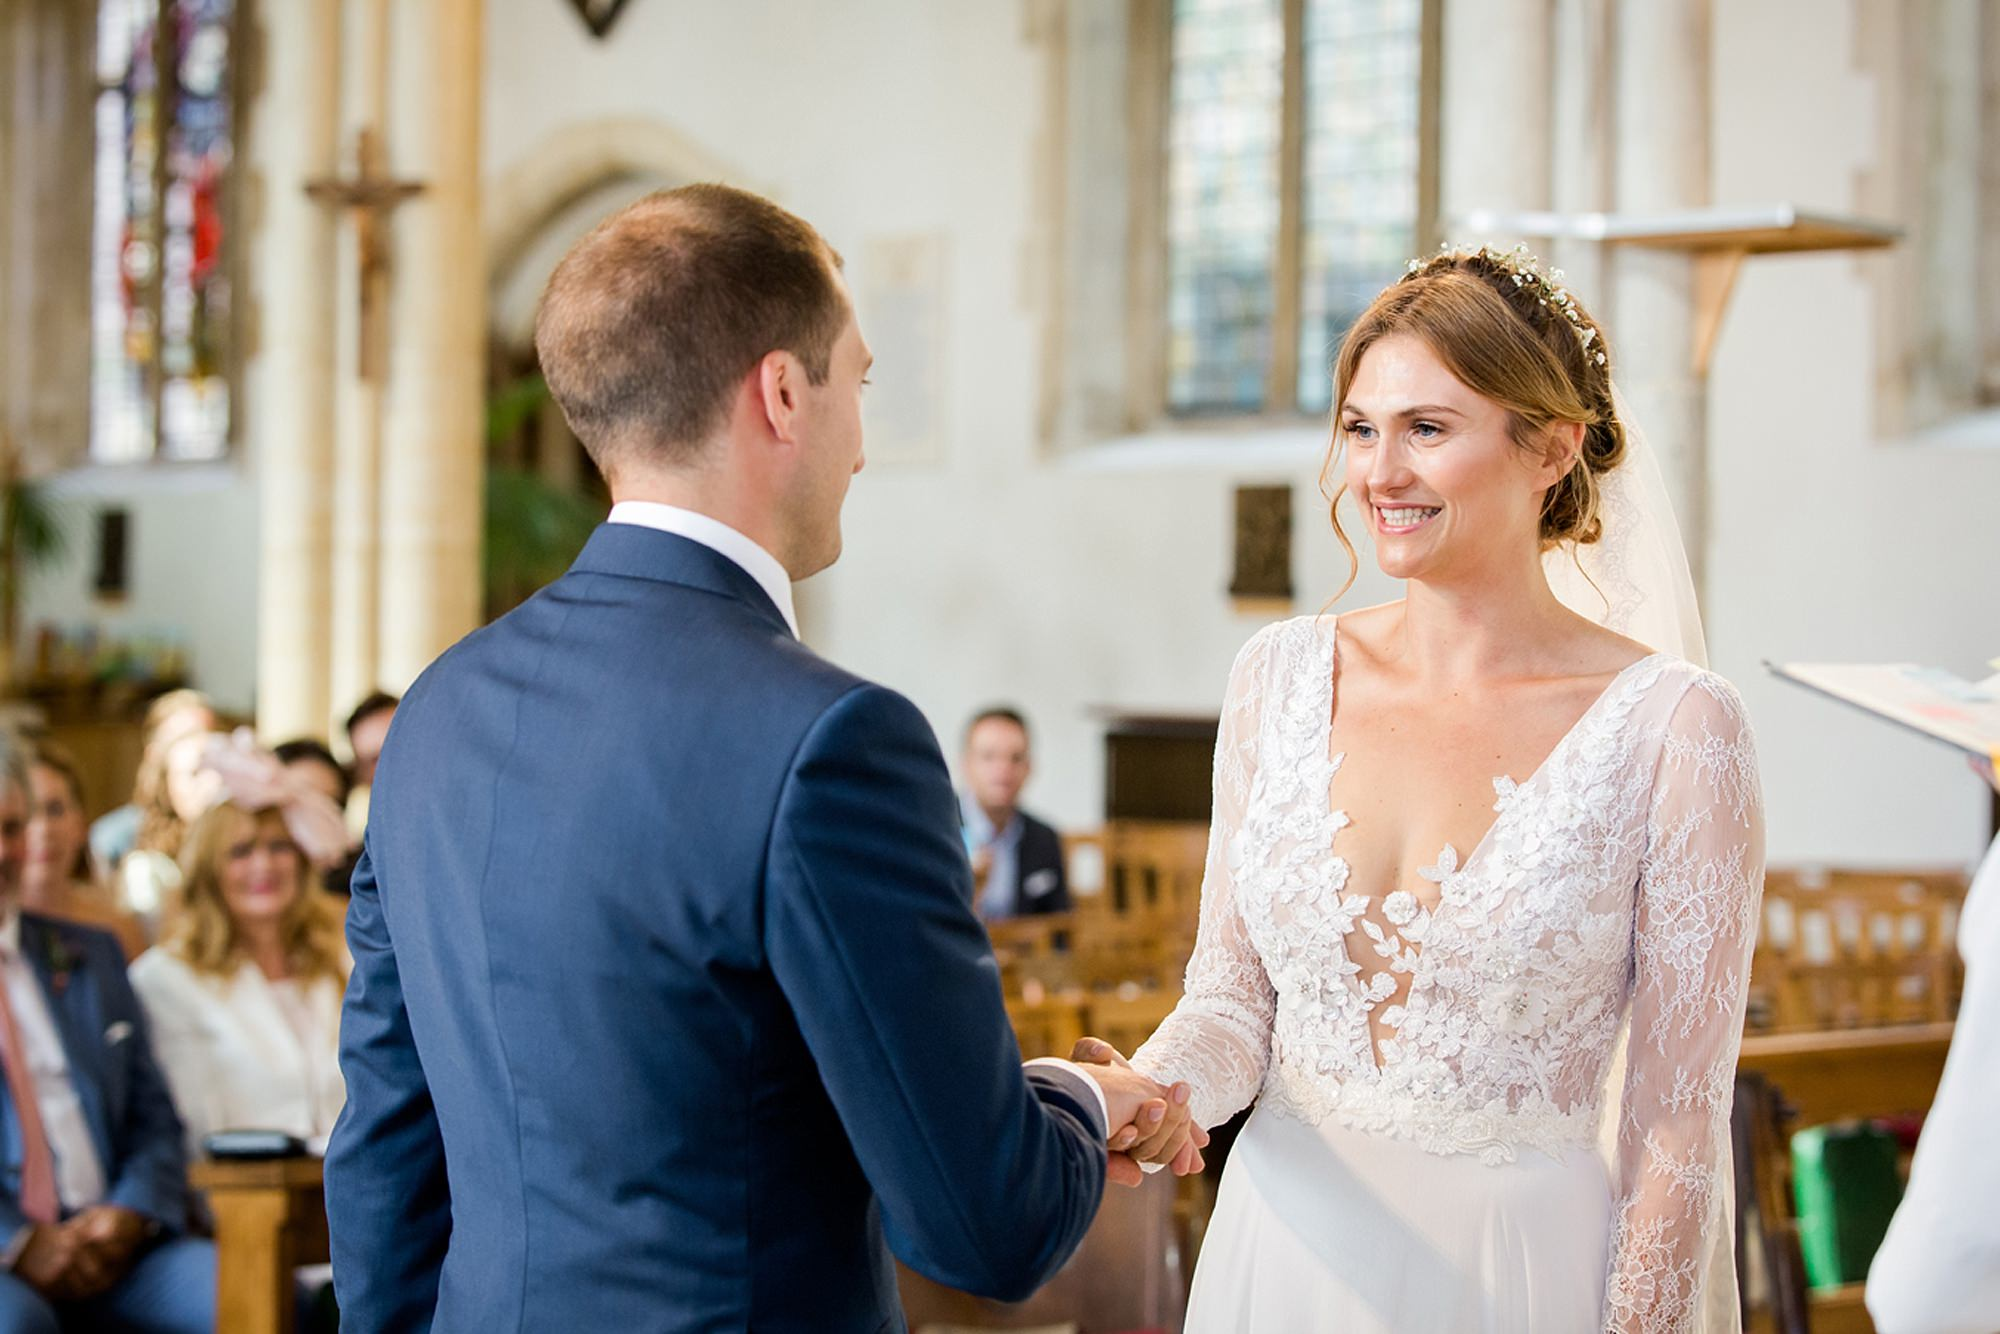 Marks Hall Estate wedding photography bride and groom during vows